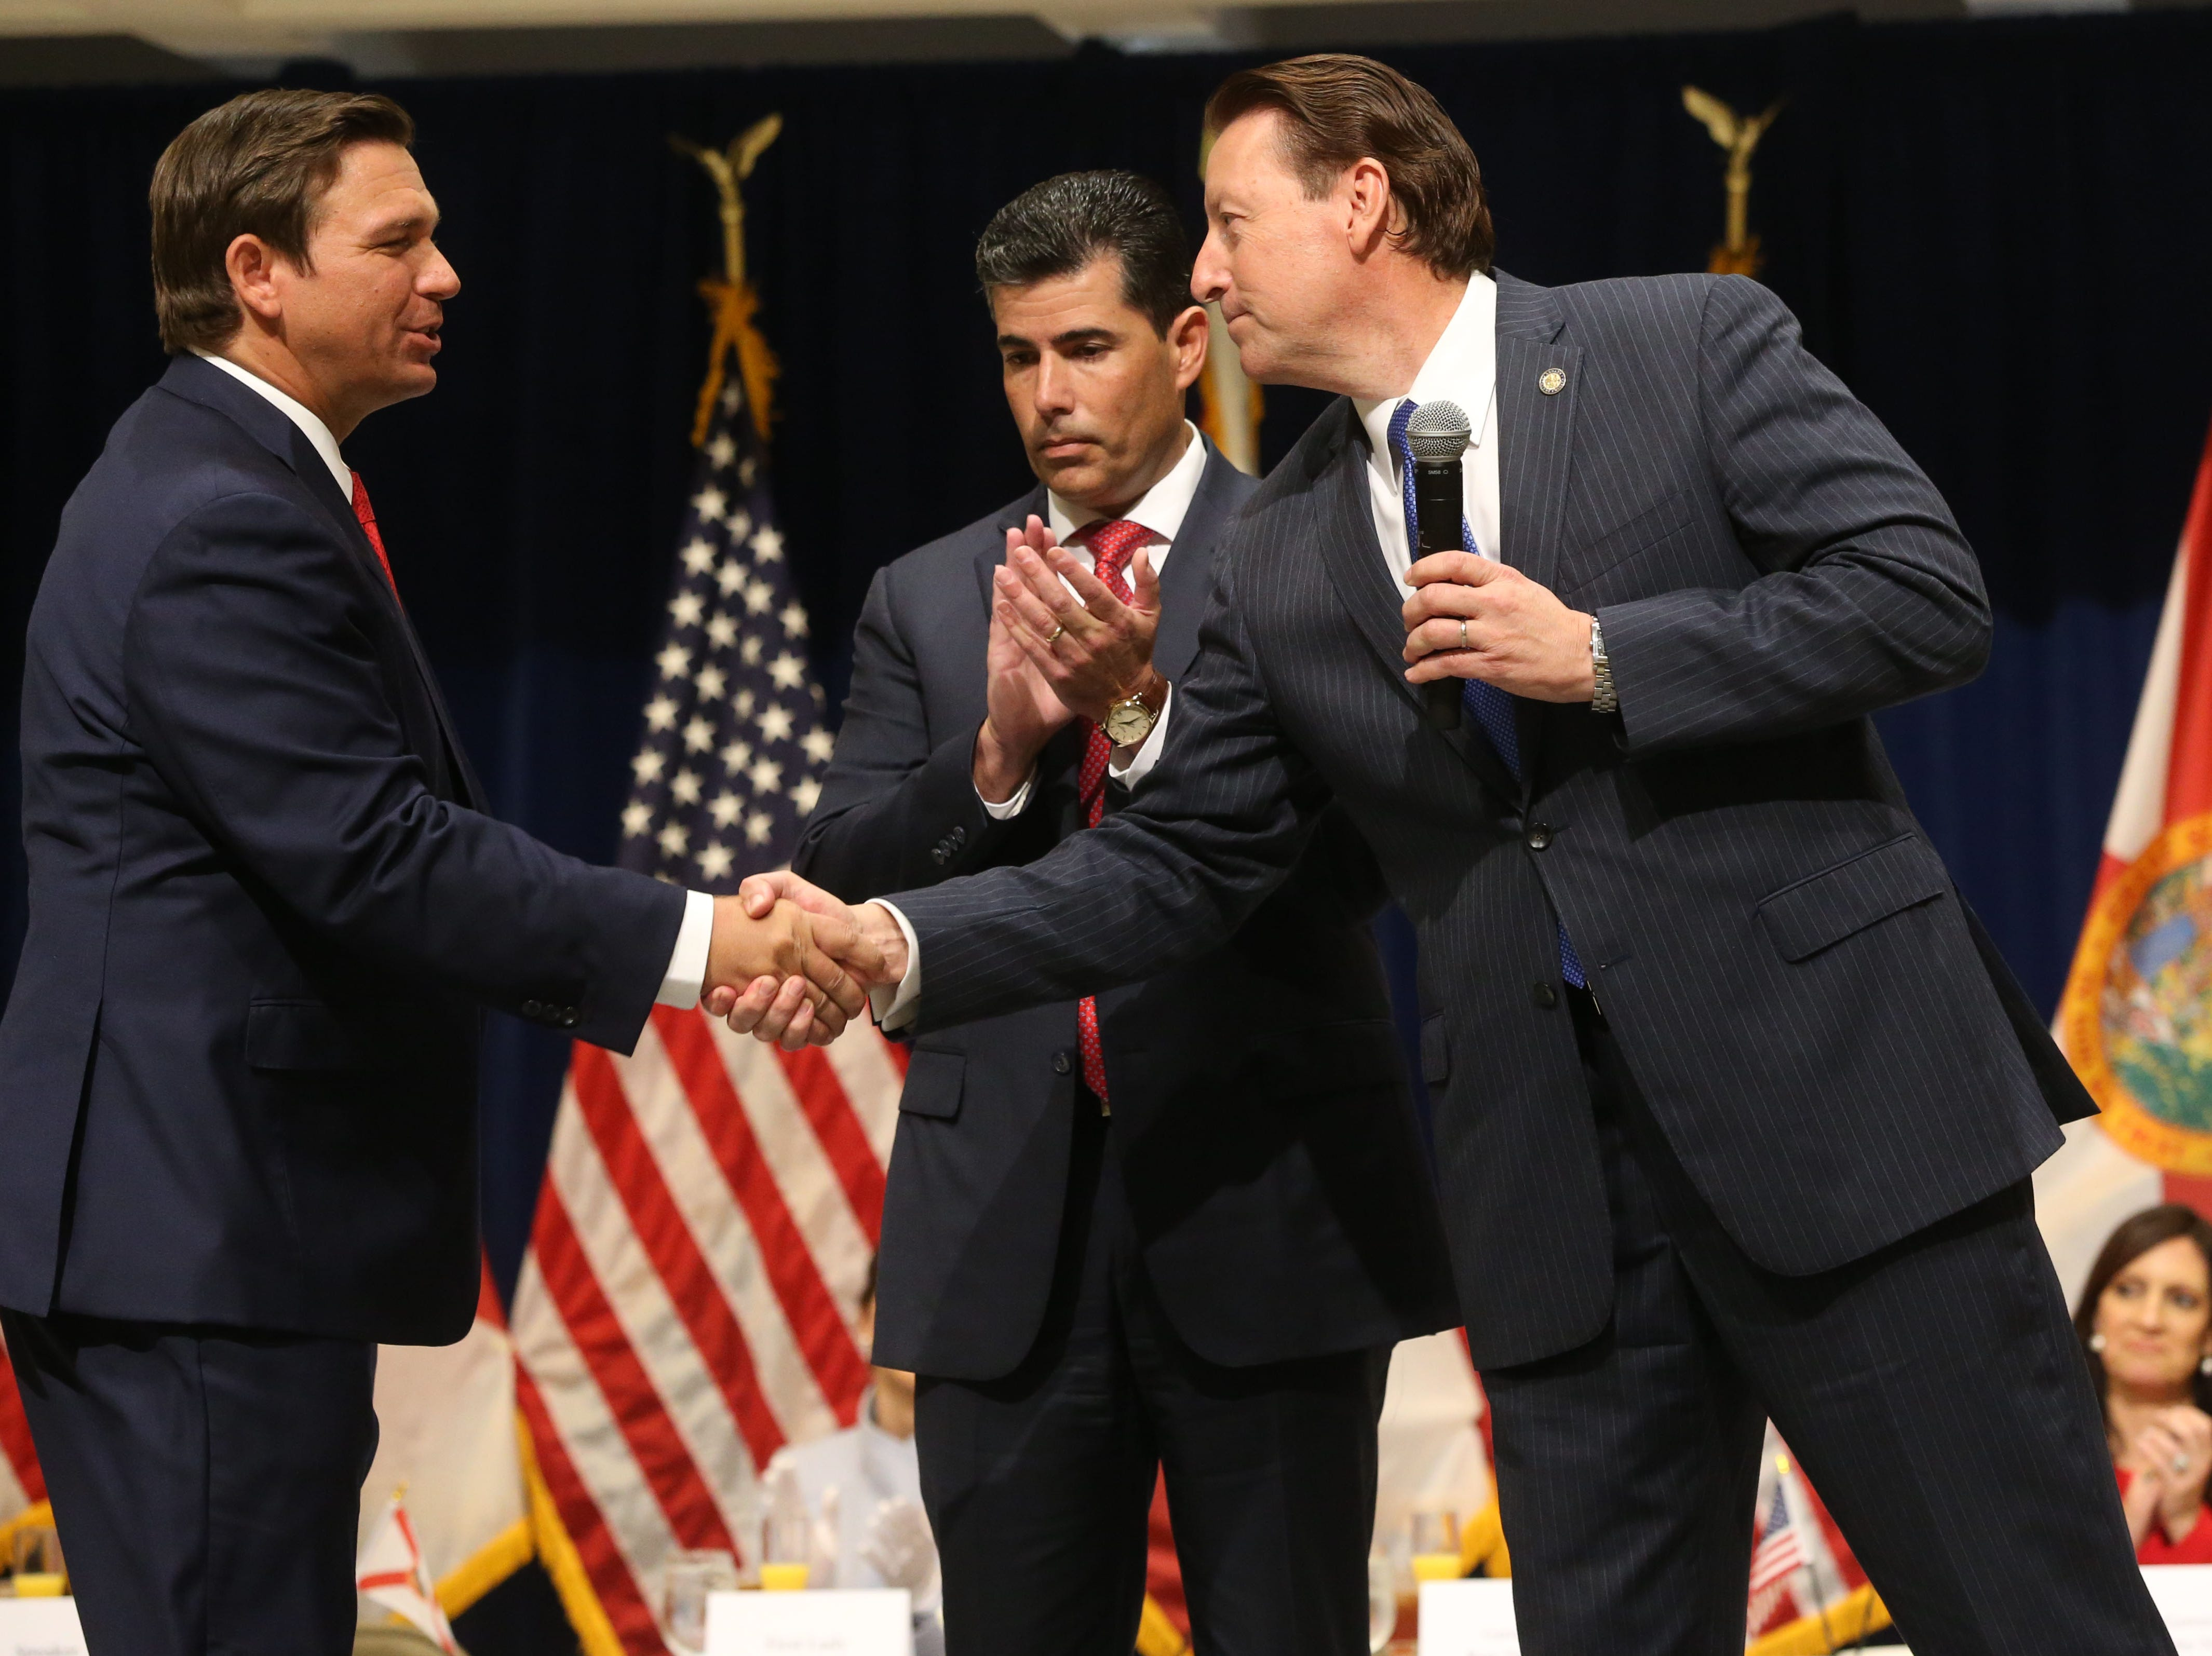 For the first time in Inaugural history, Gov. Ron DeSantis addresses FloridaÕs Legislative leaders and Cabinet officials. DeSantis discusses his plans to work with our stateÕs elected leaders to achieve a Bold Vision for a Brighter Future, Tuesday, Jan. 8, 2019. Gov. Ron DeSantis, left, shakes hands with Senate President Bill Galvano.